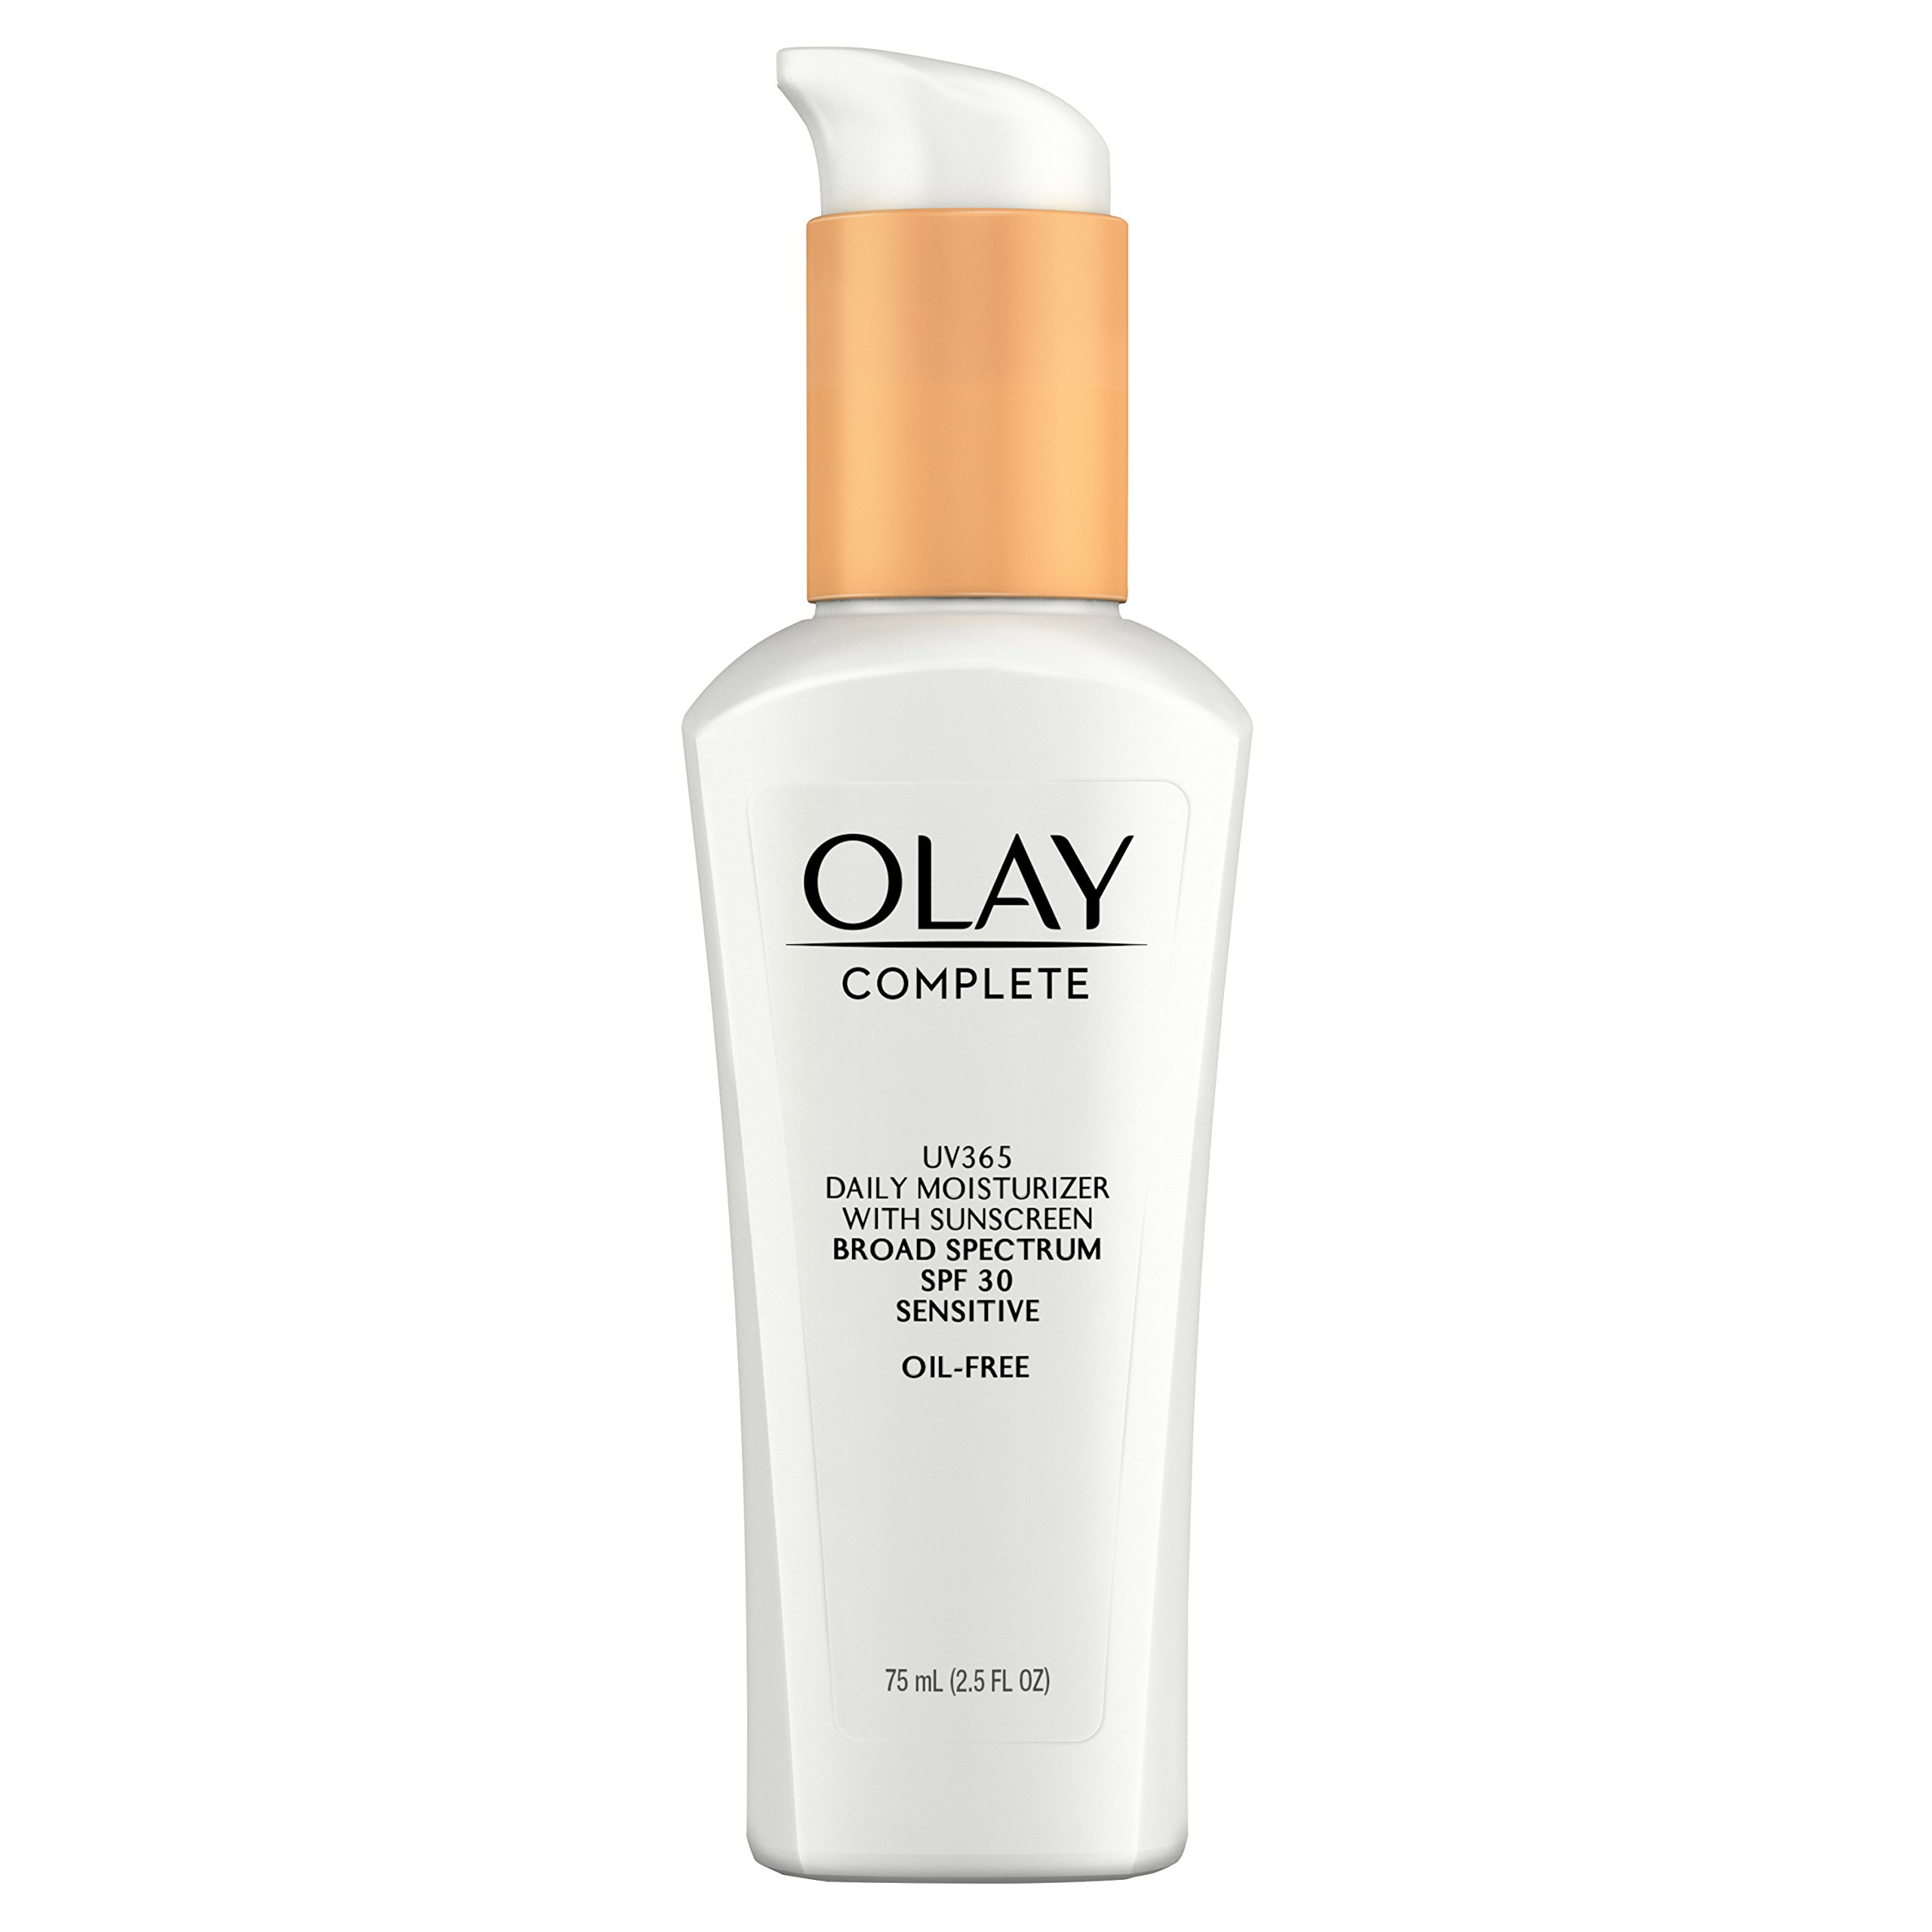 Face Moisturizer by Olay Complete Daily Defense All Day Moisturizer With Sunscreen, SPF30 Sensitive Skin, 2.5 fl. Oz., (Pack of 2) by Olay